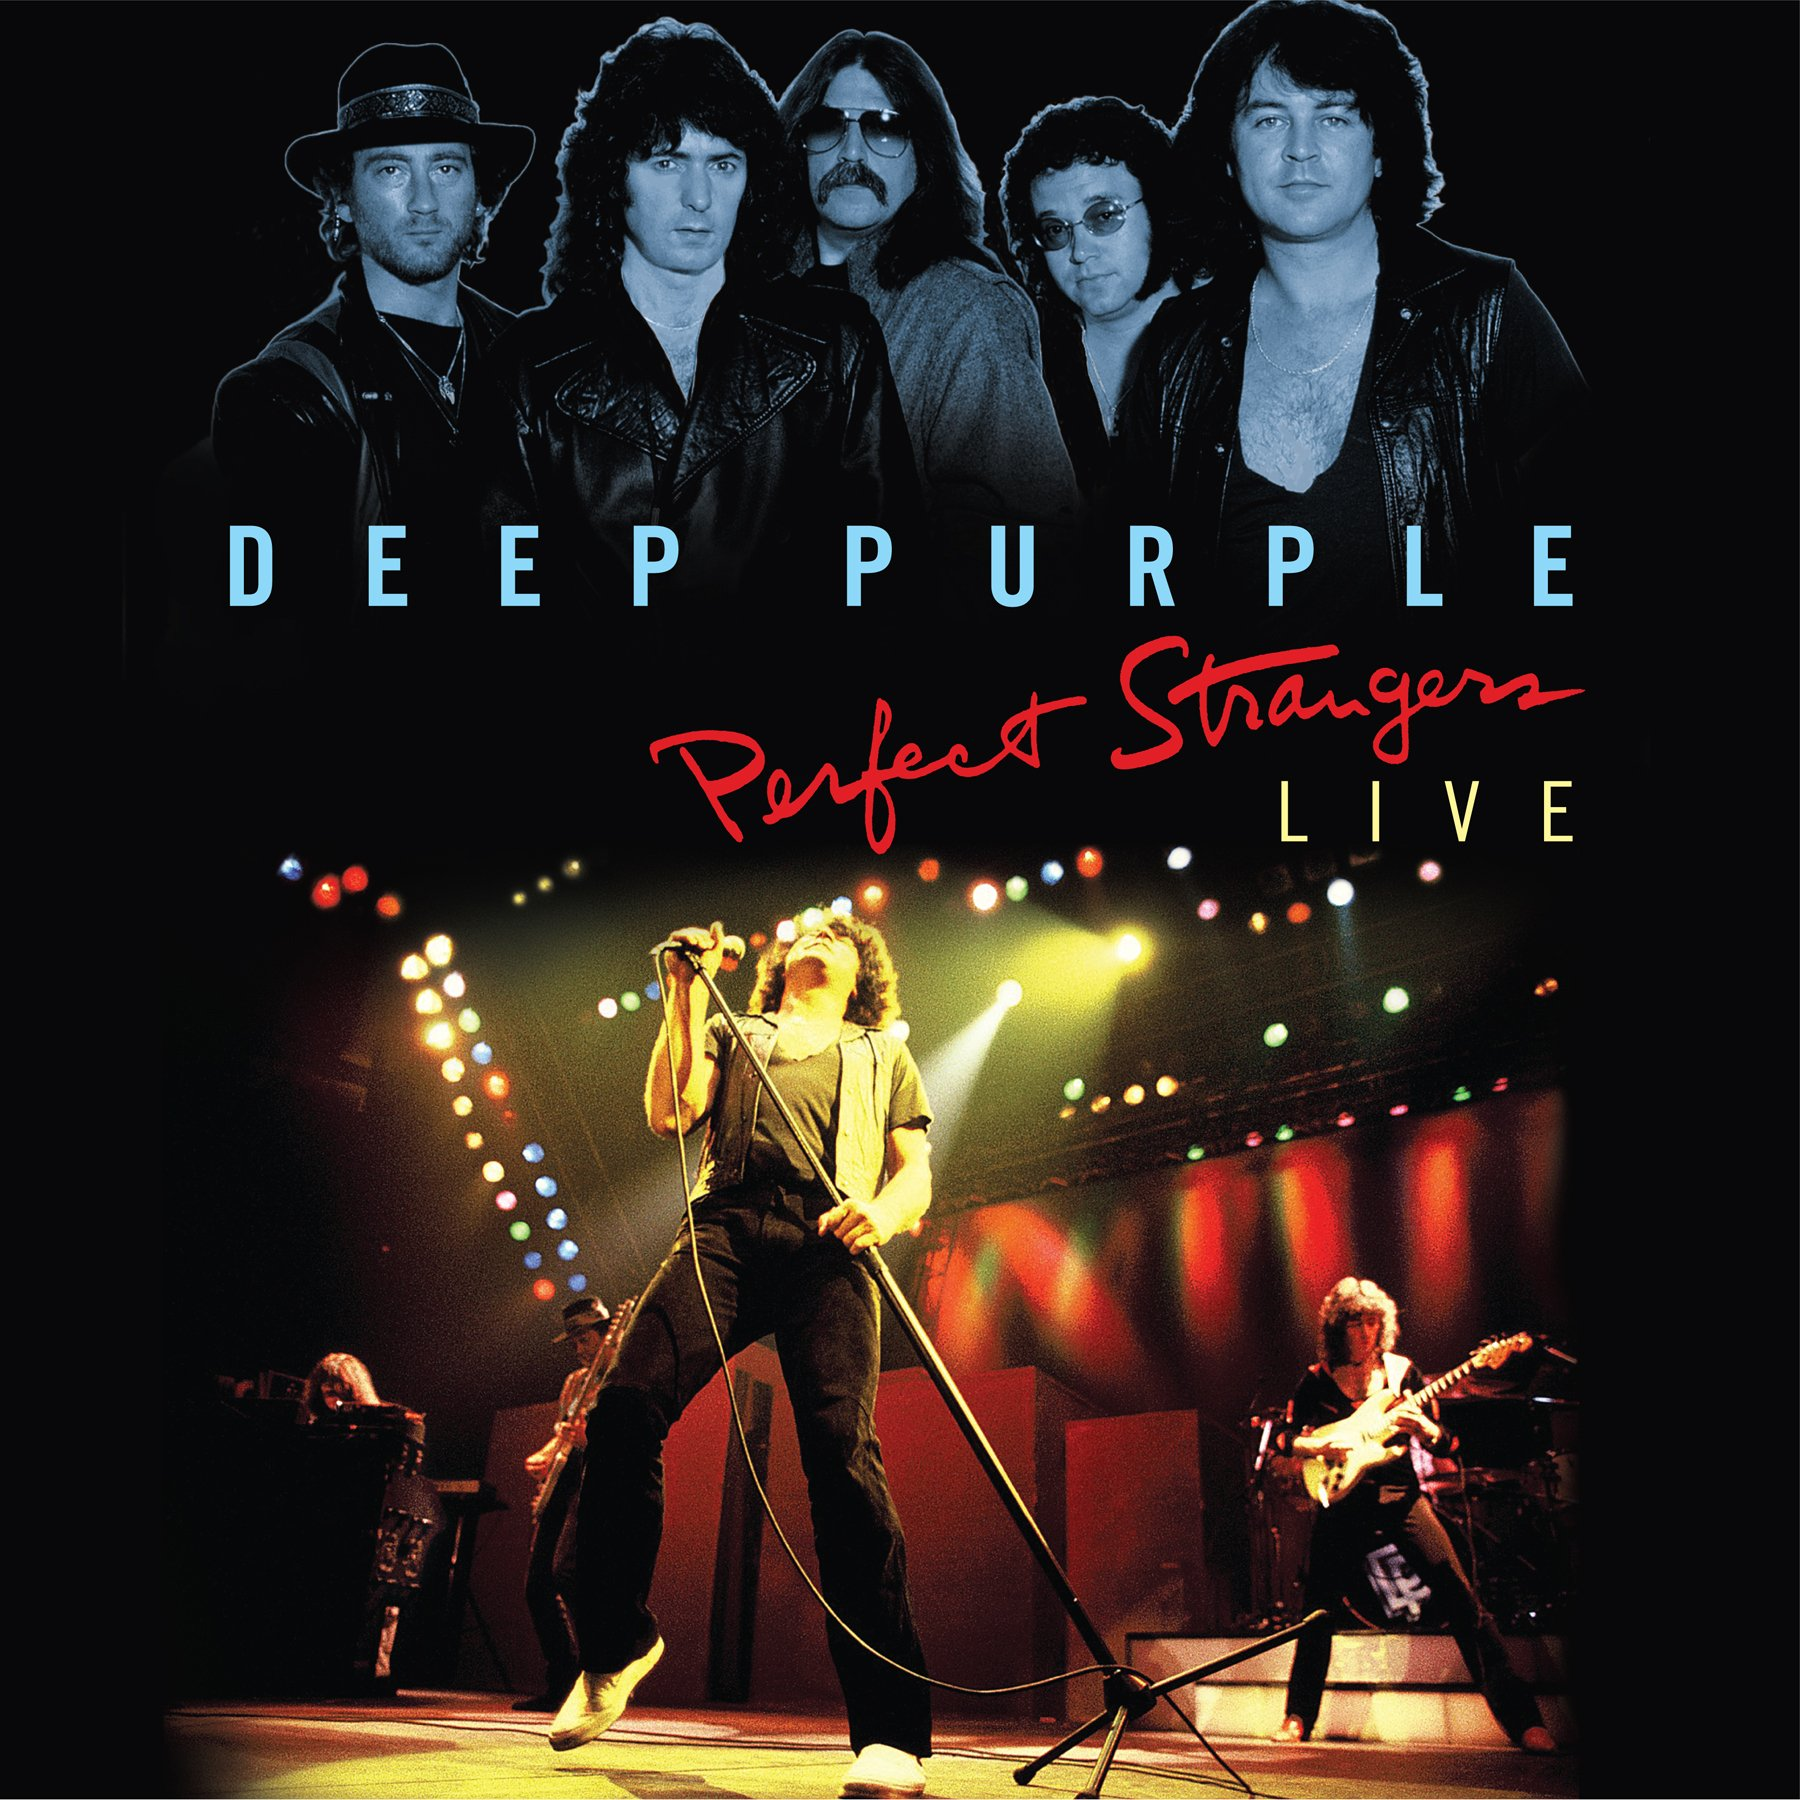 Perfect Strangers Live [2 LP/2 CD/DVD Combo] by VINYL